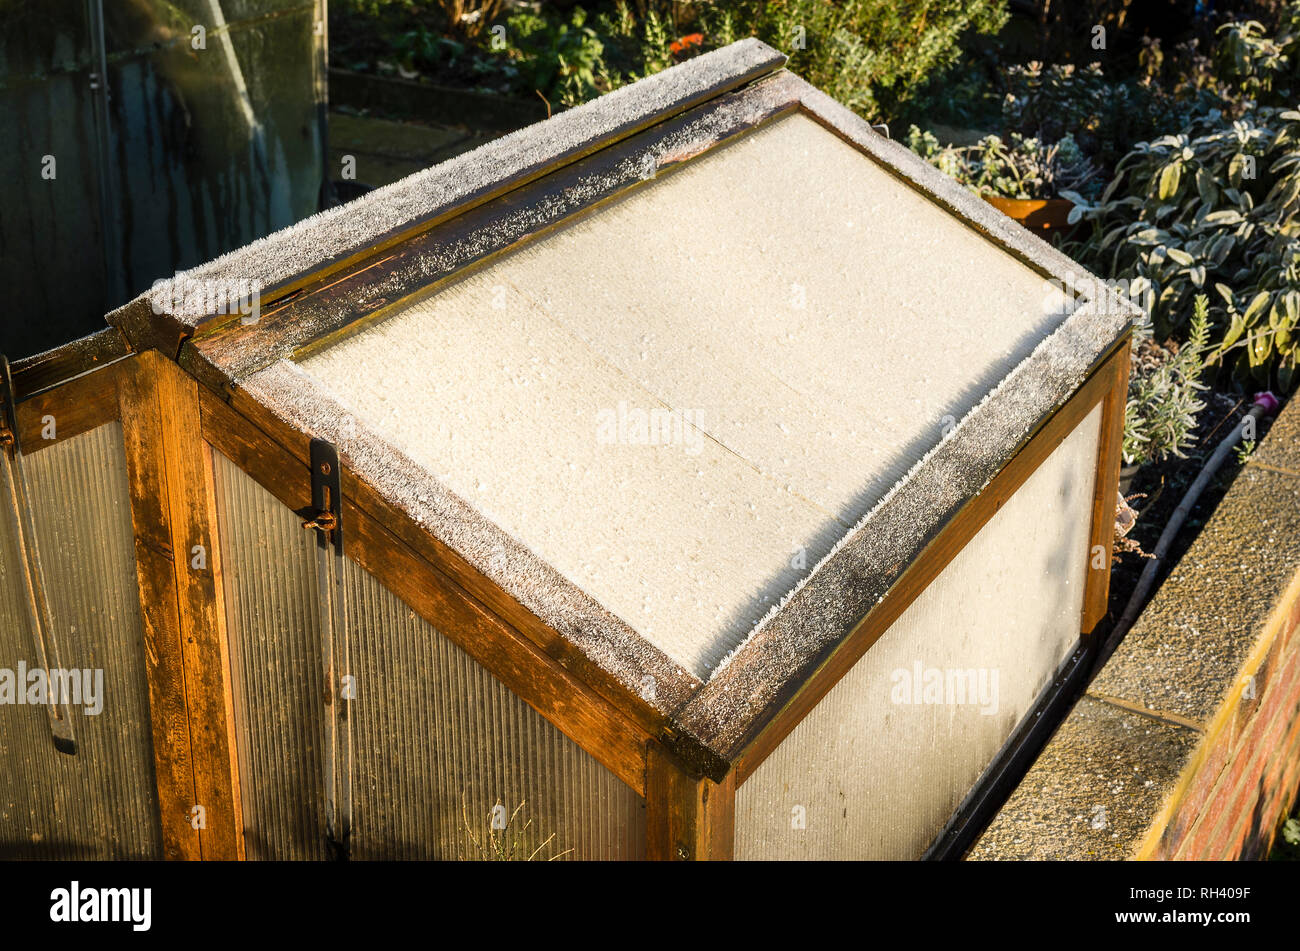 A frost-covered wooden cold frame on a raised bed protecting plants during January in an English garden Stock Photo